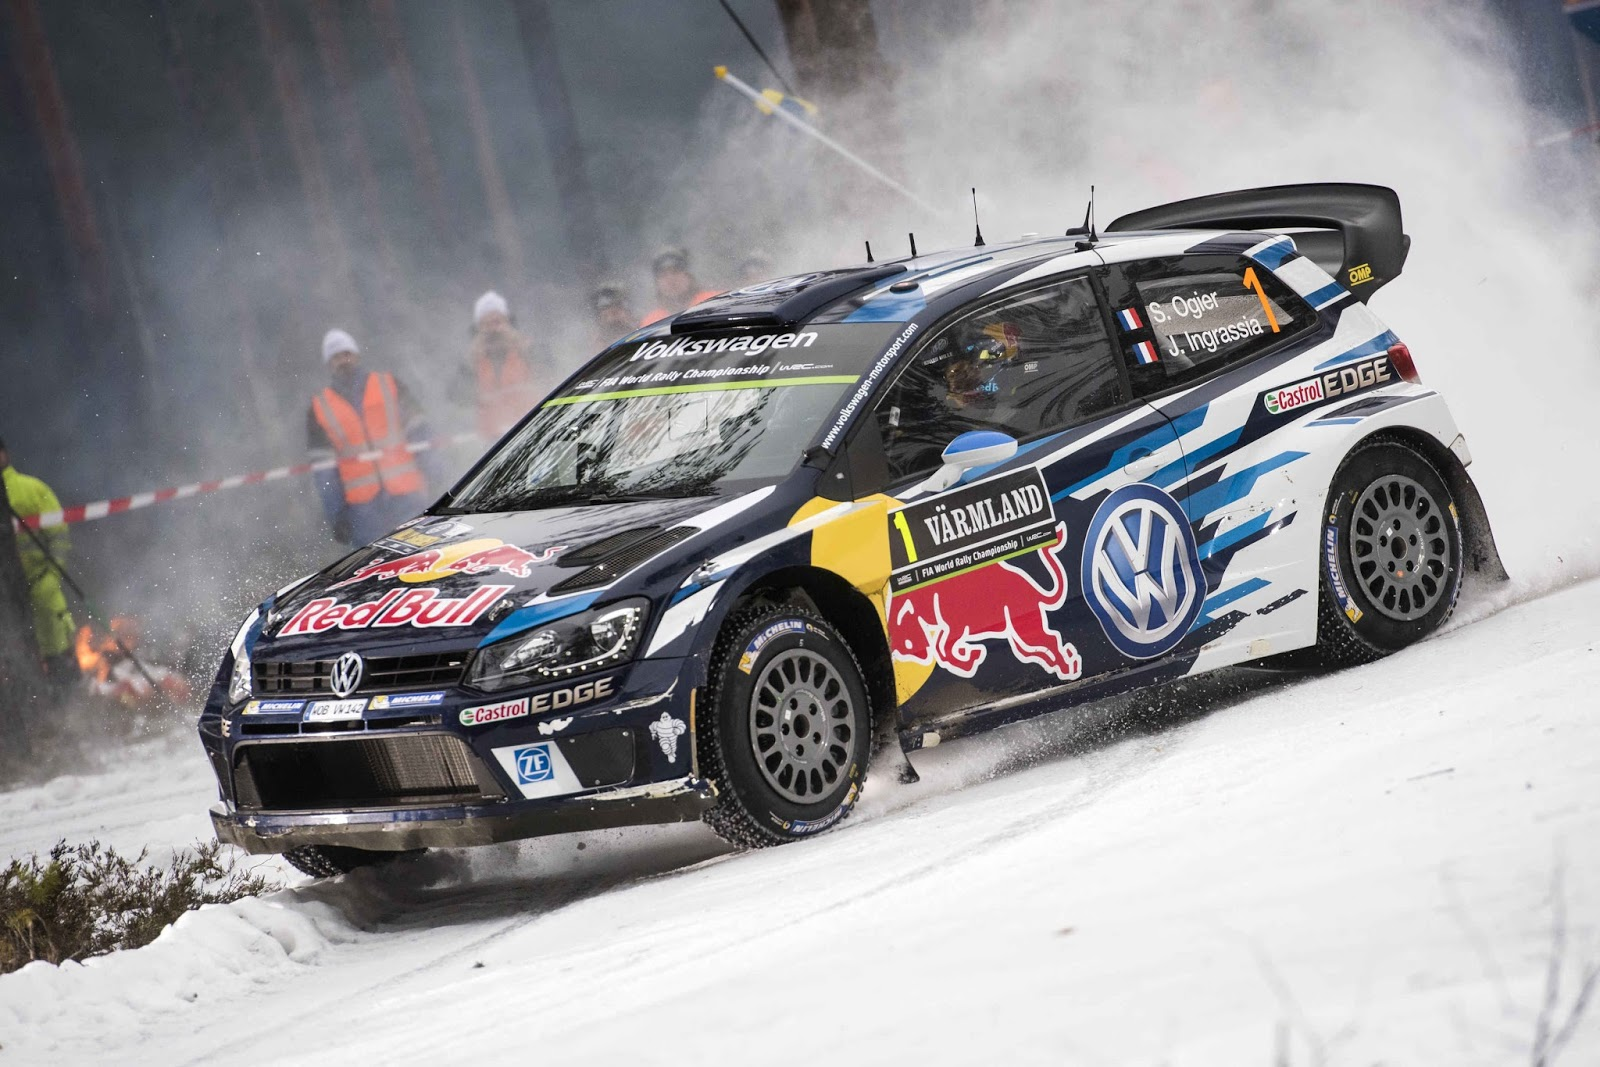 Marvs rallyworld day1 wrc rally swedia 2015 trouble is the